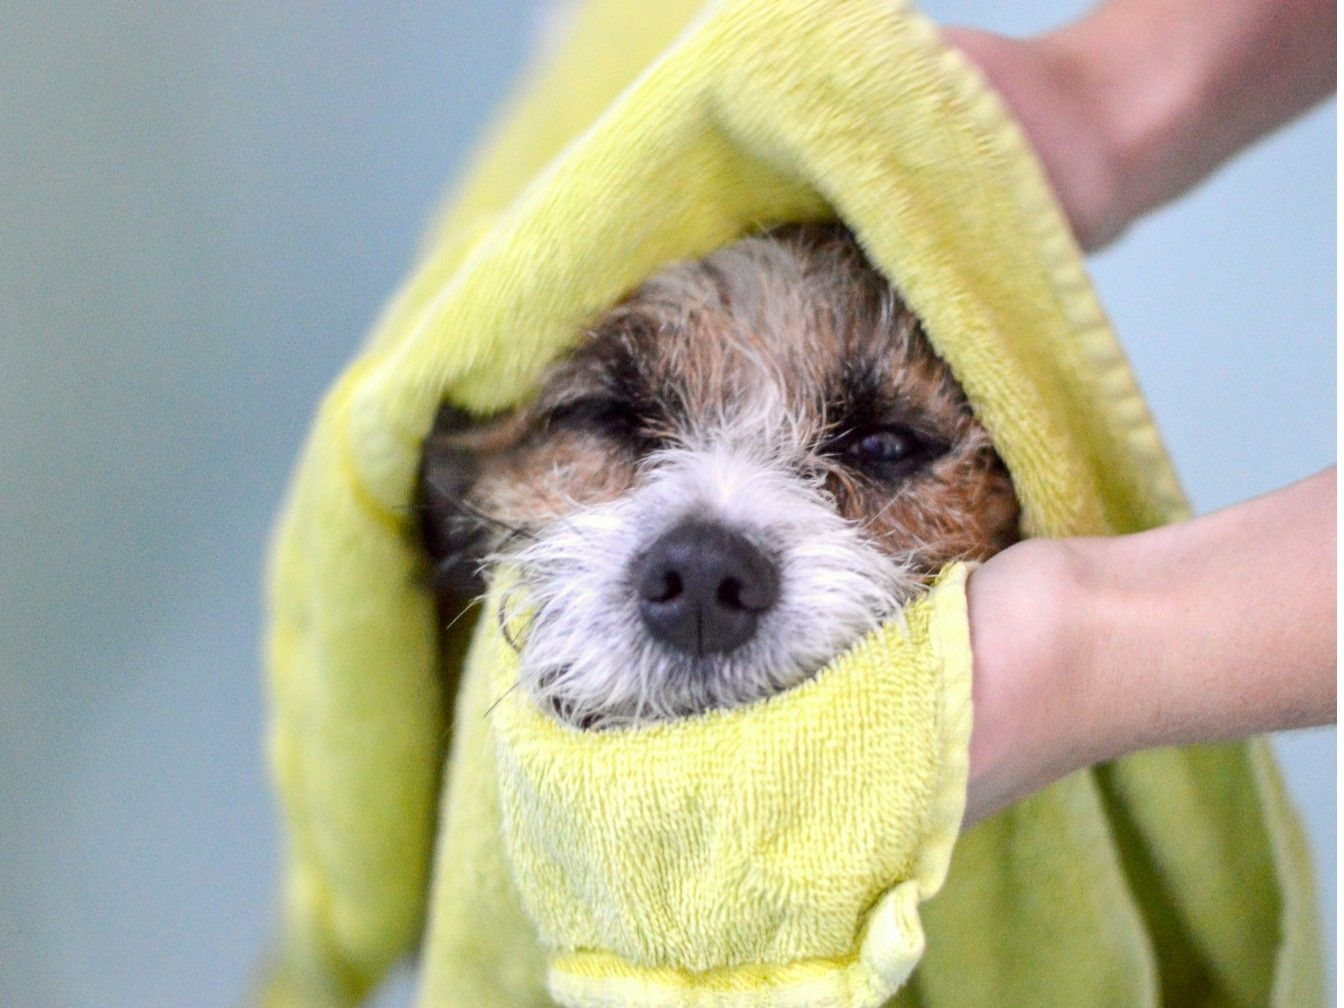 Image of a small dog being dried off with a towel